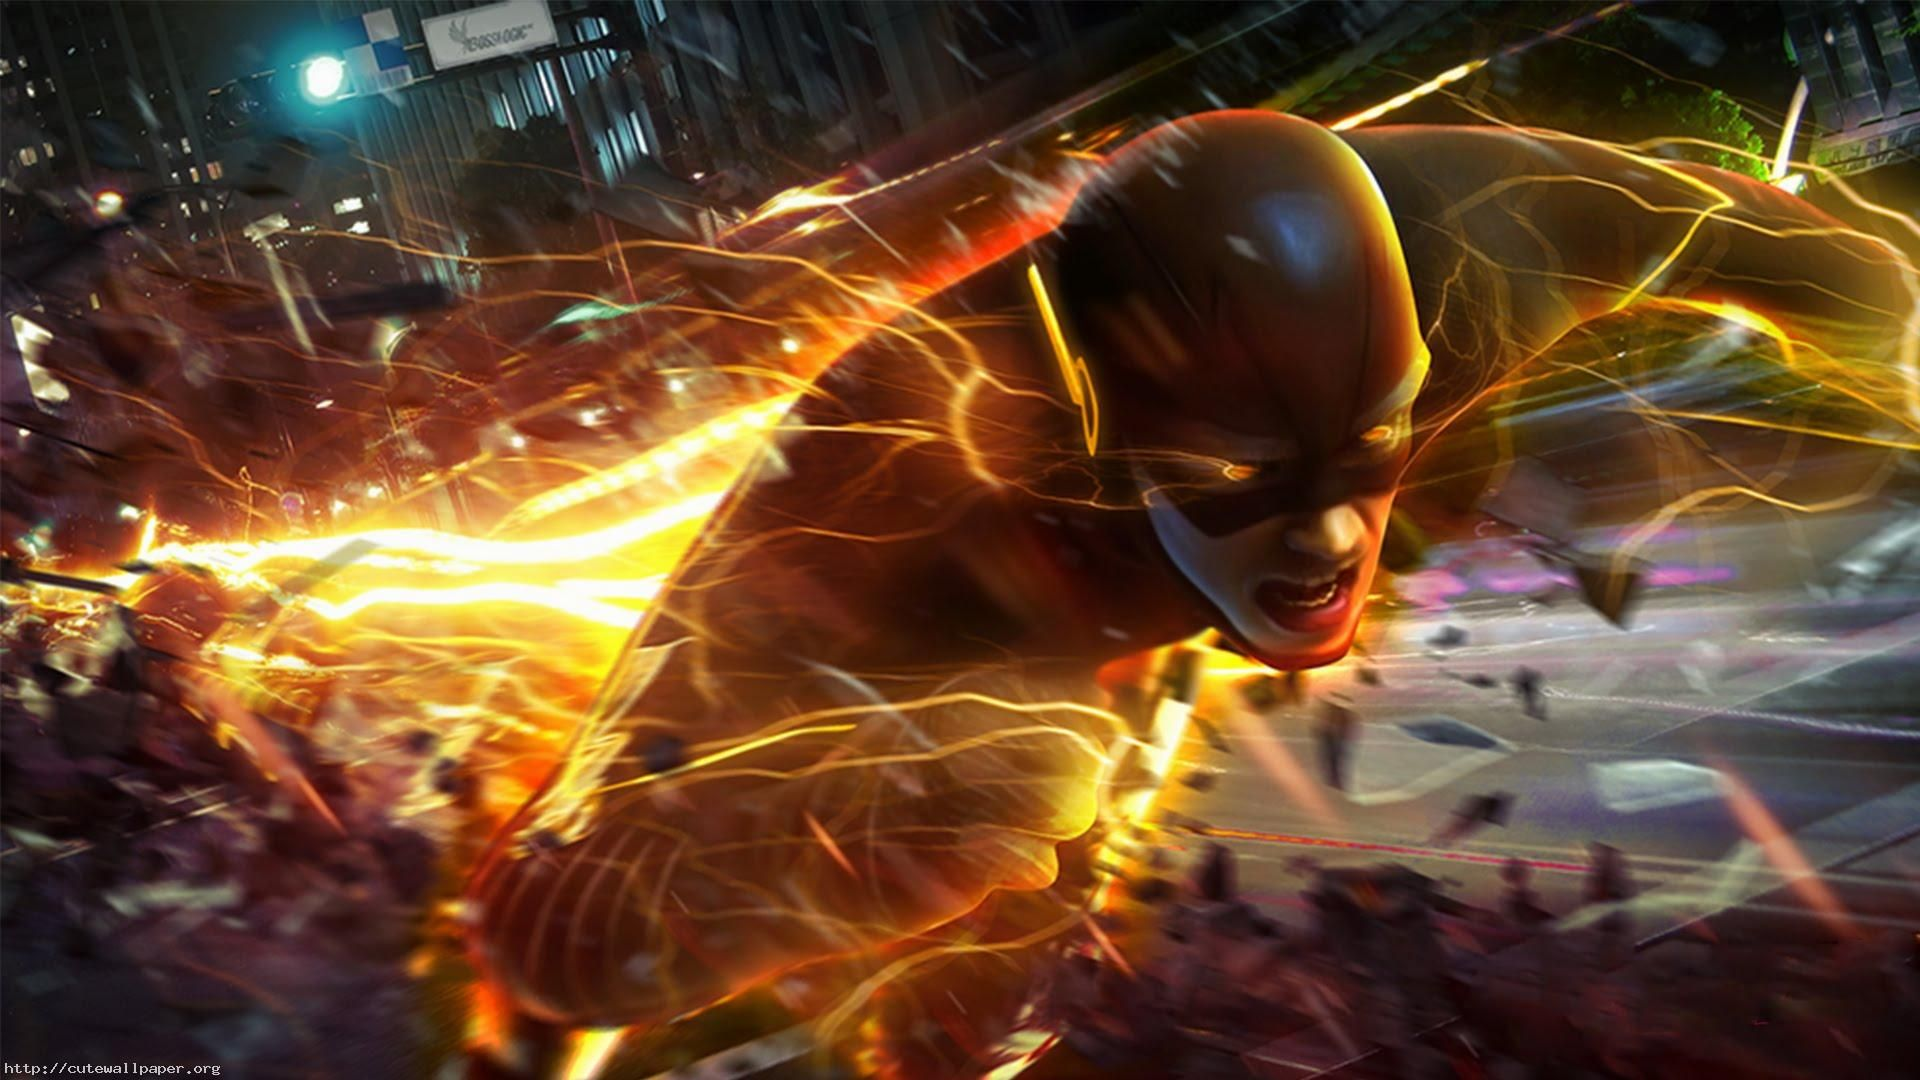 the flash wallpaper hd | wallpapers for desktop | pinterest | the